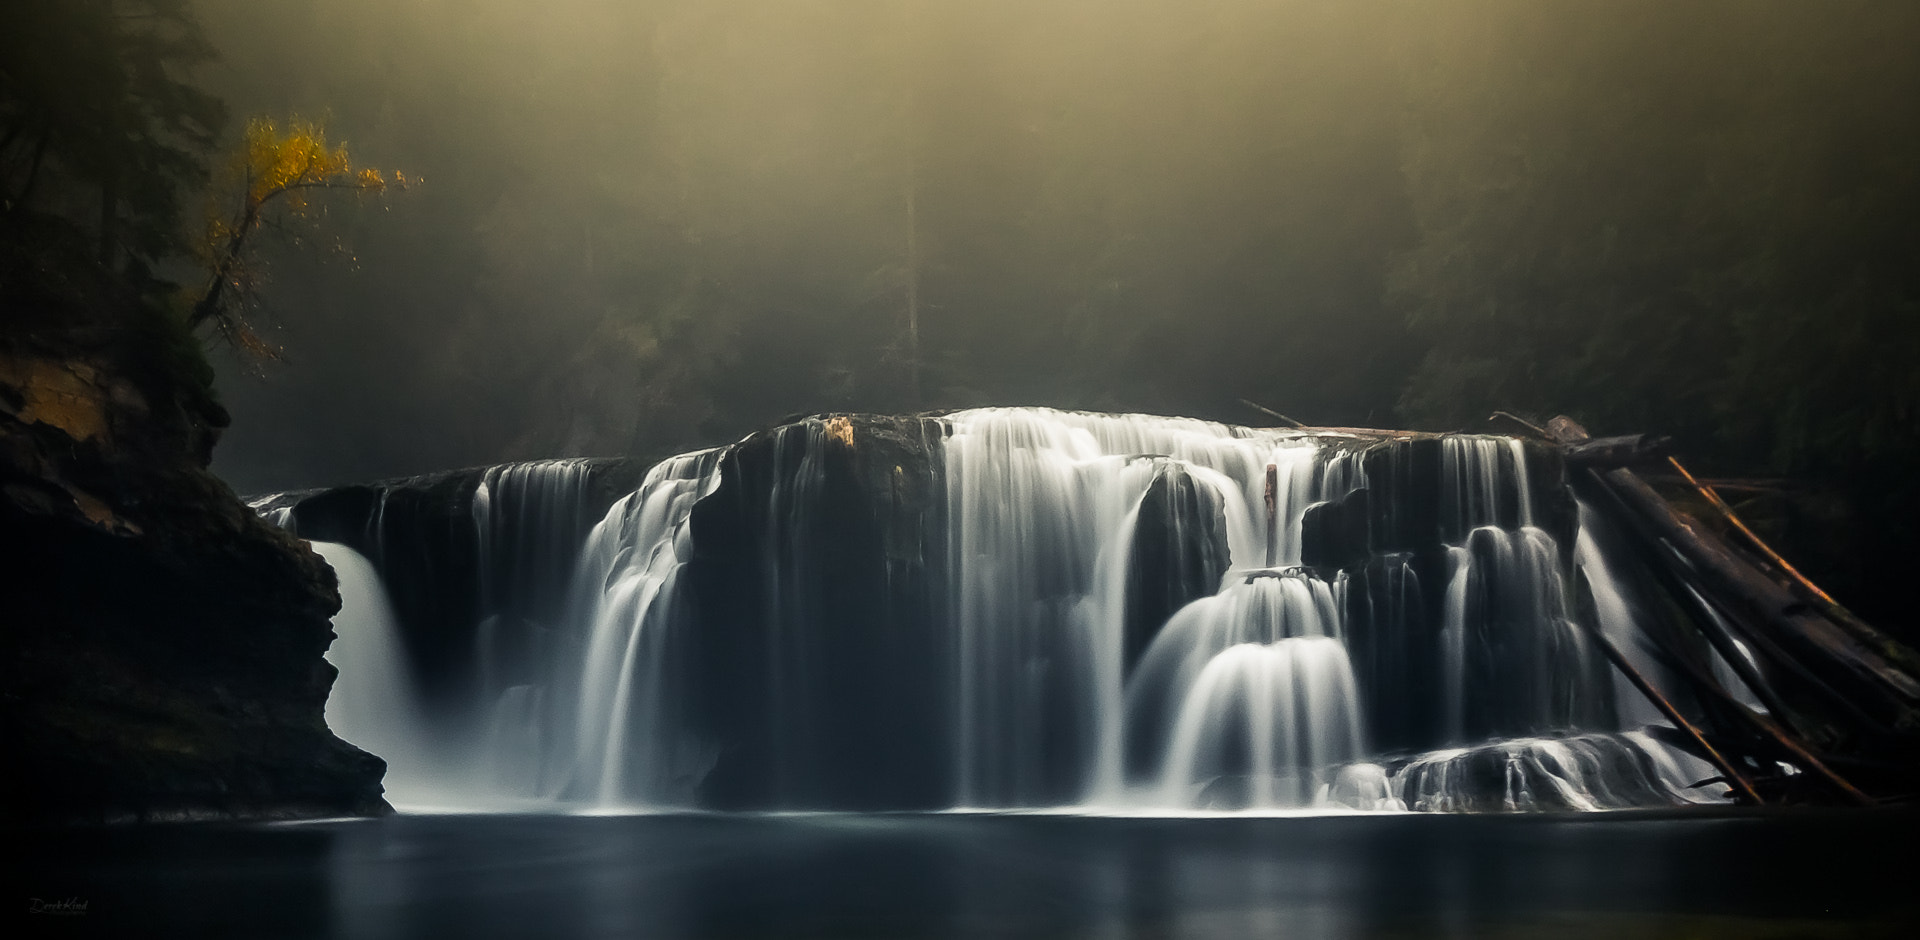 Photograph Falls of Fantasy by Derek Kind on 500px